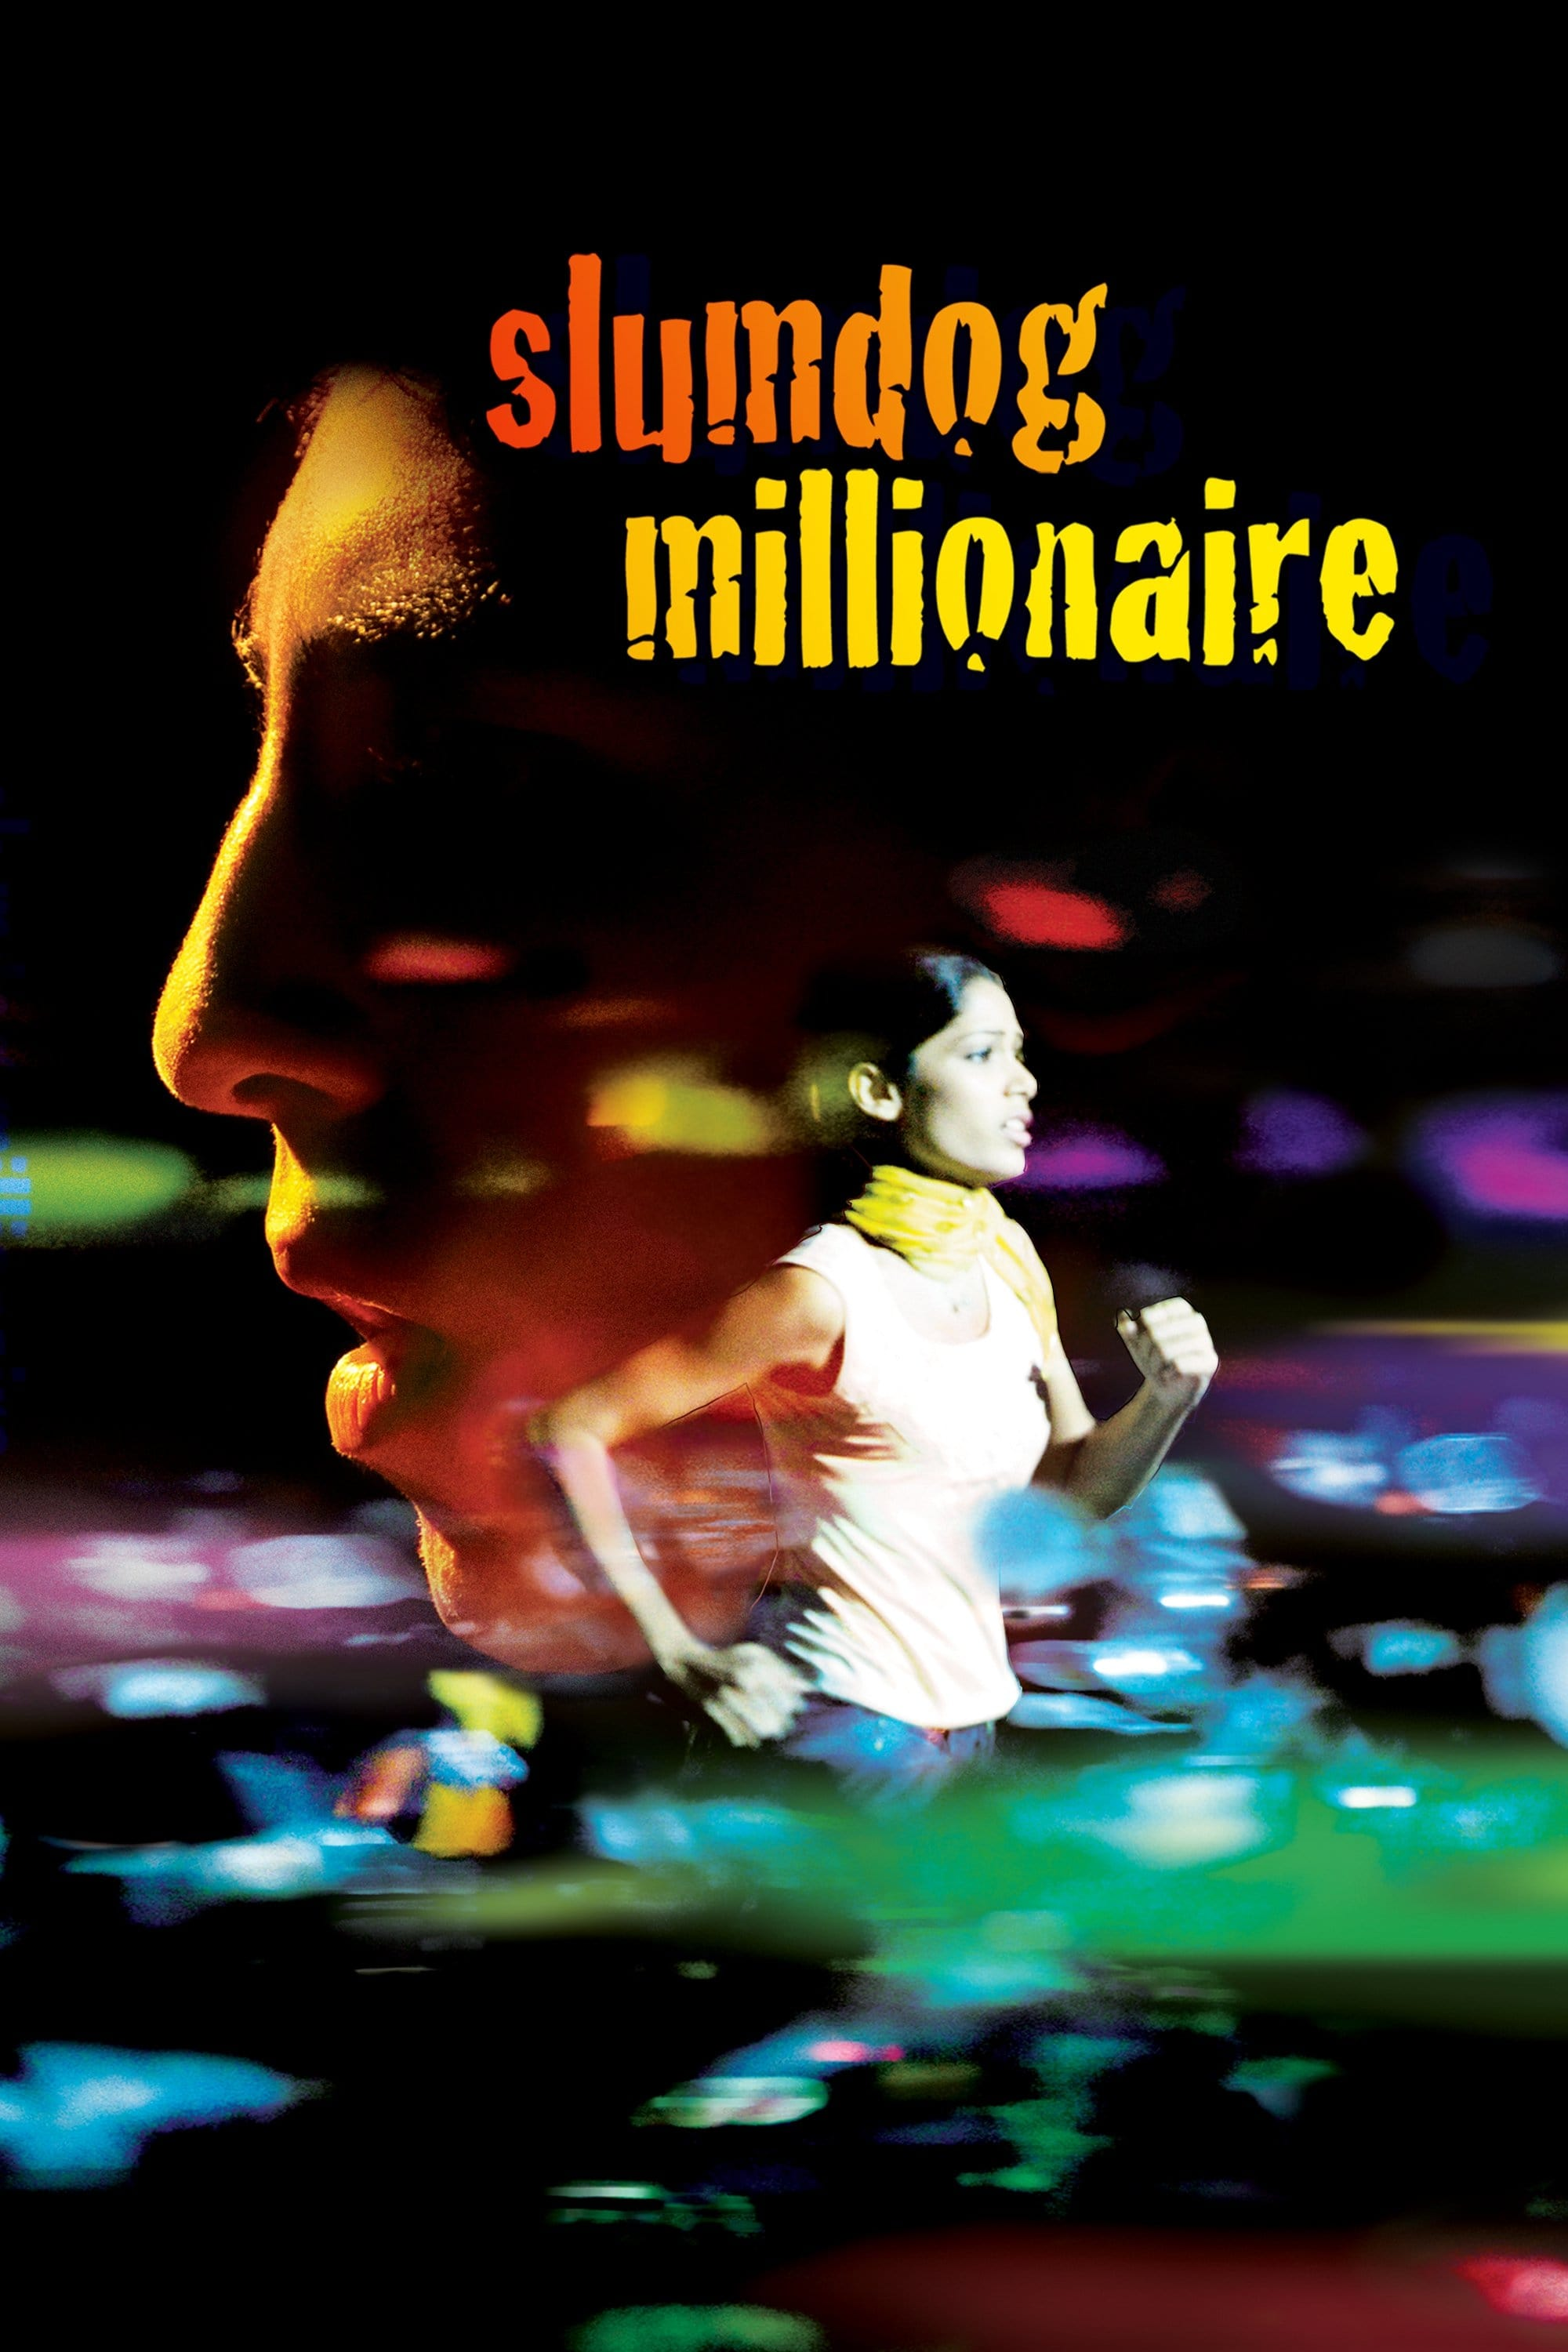 slumdog millionaire case Slumdog millionaire: lifestyles of the broke and unknown in 2009, the oscar for best motion picture of the year was awarded to christian colson for the movie slumdog millionaire this is the success story of an uneducated youth, raised in slums of india,.